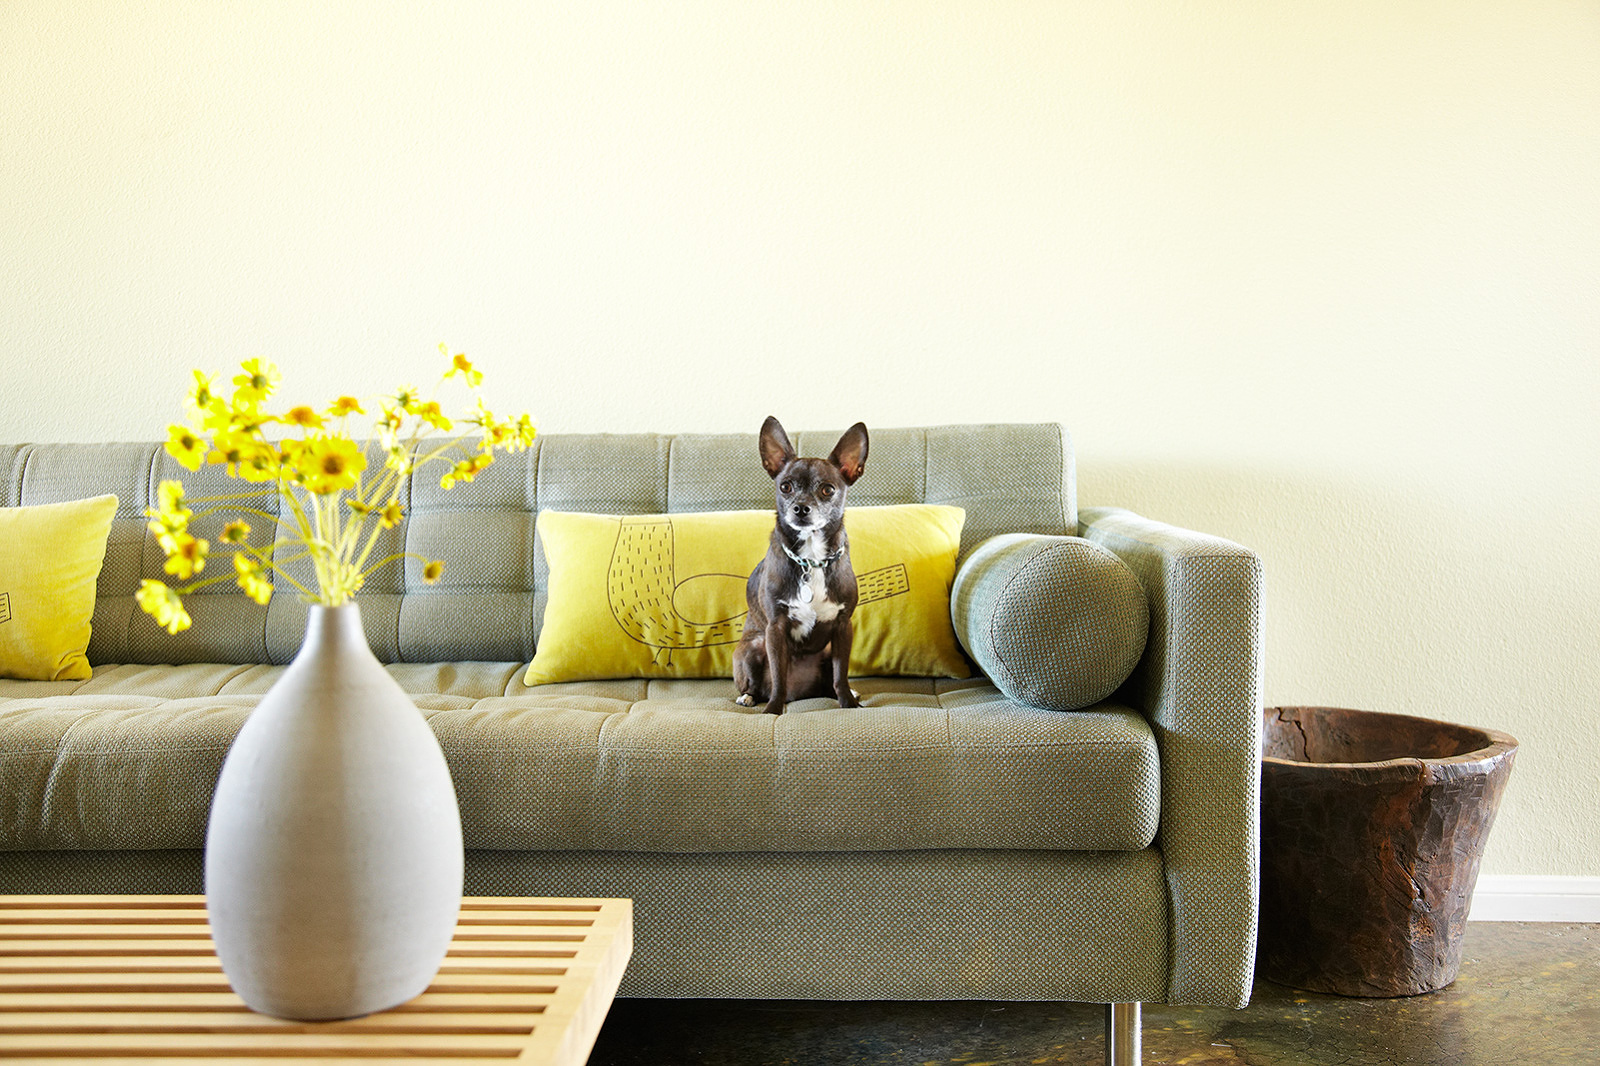 Dog on sofa  | Trinette+Chris Photographers